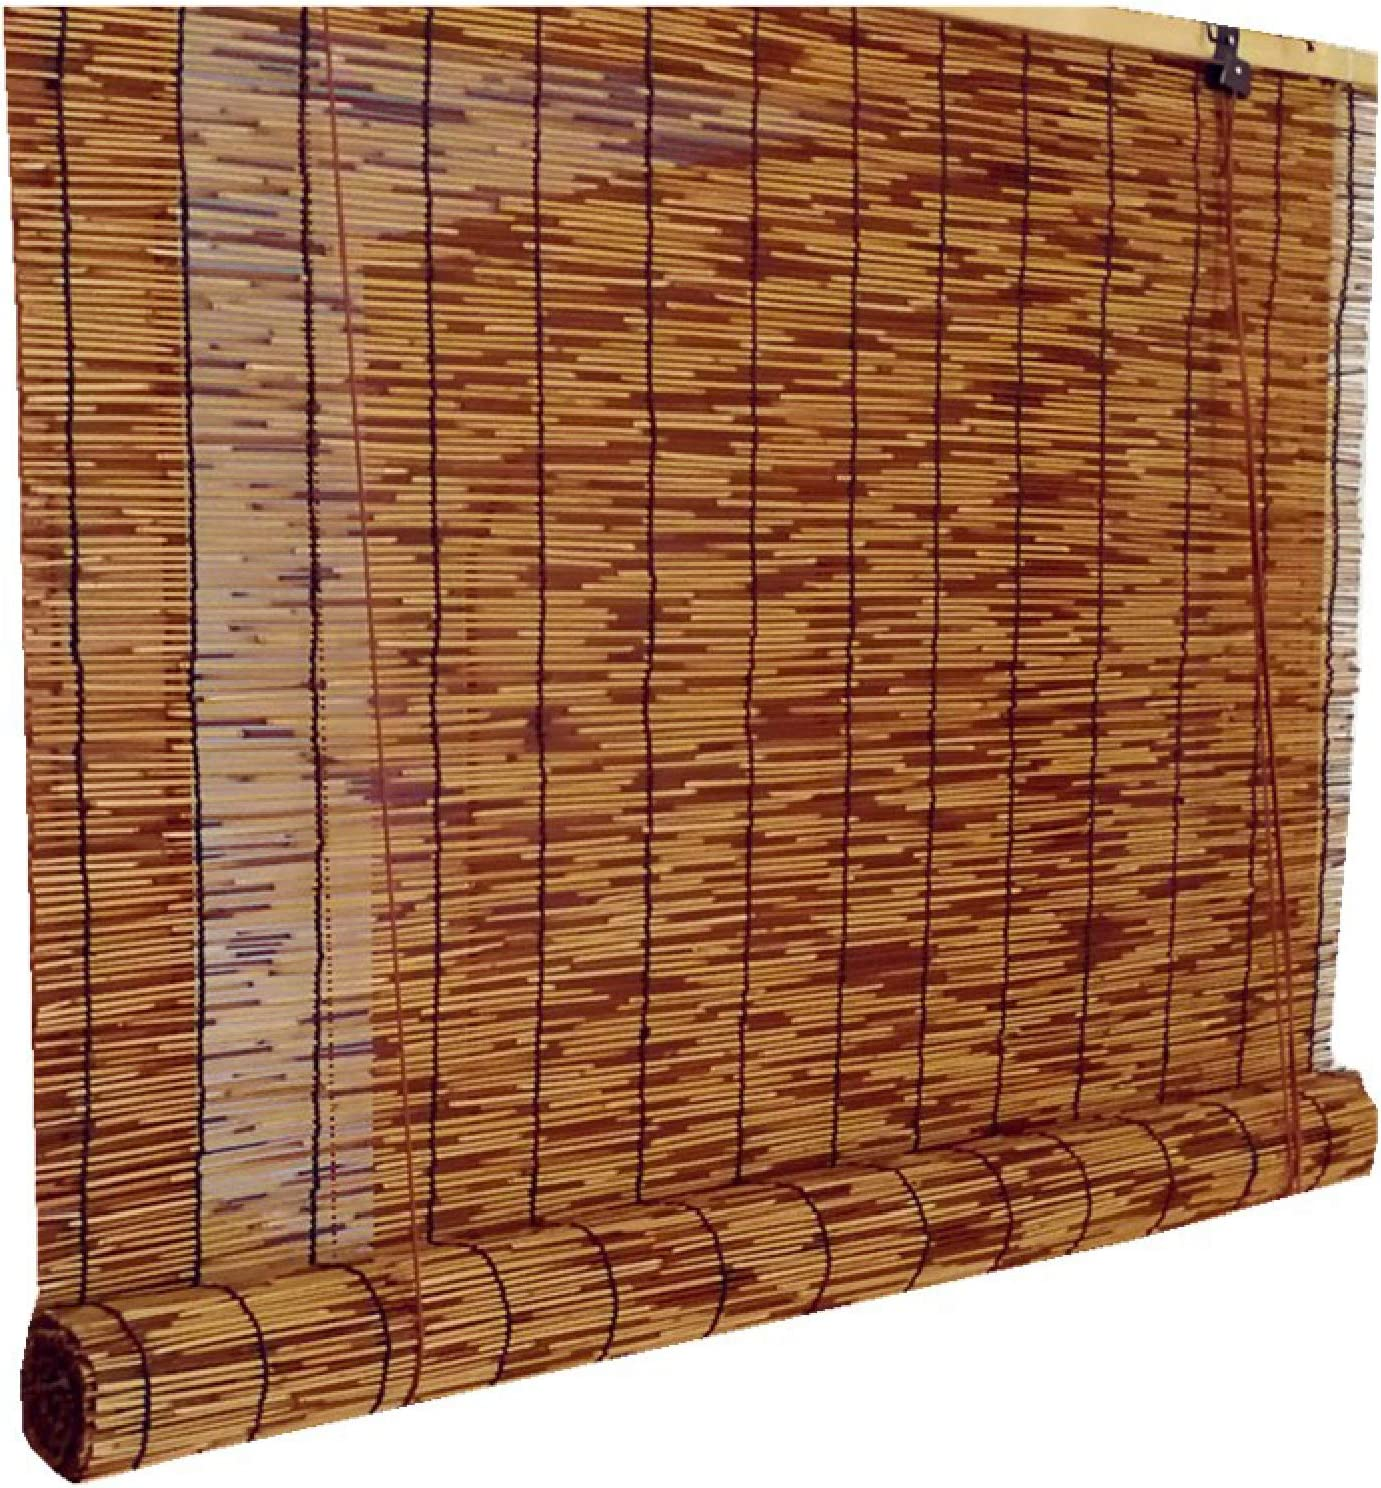 KDDFN Bamboo Roll Up Window Blind,Exterior Roller Shade Outdoor,Roman Blinds Louver Window Roller Blinds,Hand-Woven,Retro Decoration,Breathable,Anti-Uv,Protection Privacy (100 * 120cm/39 * 47in) 100*120cm/39*47in